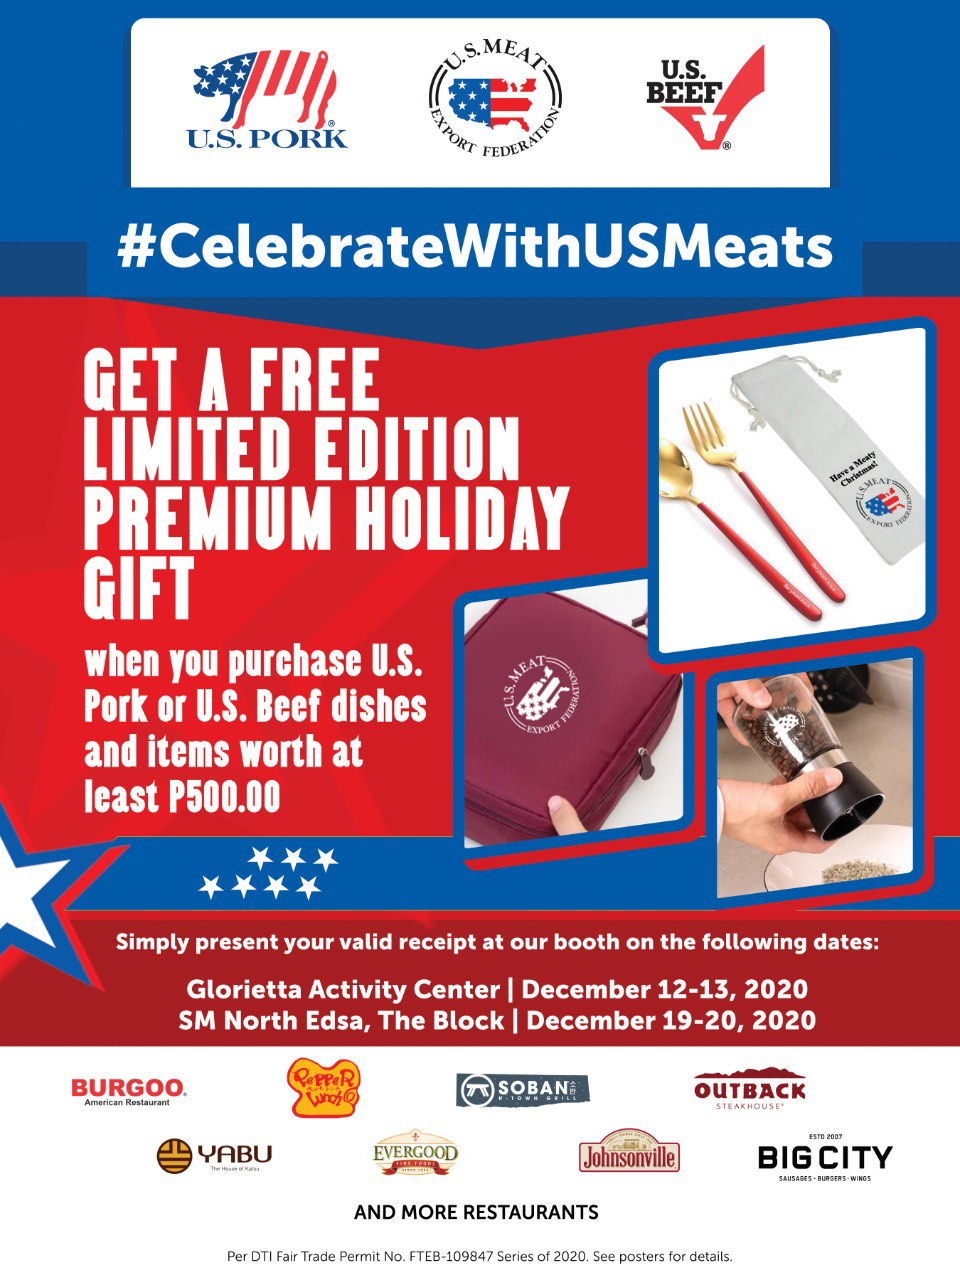 Celebrate With U.S. Meats Poster for PR - U.S. meats keeps the holidays alive in the new normal